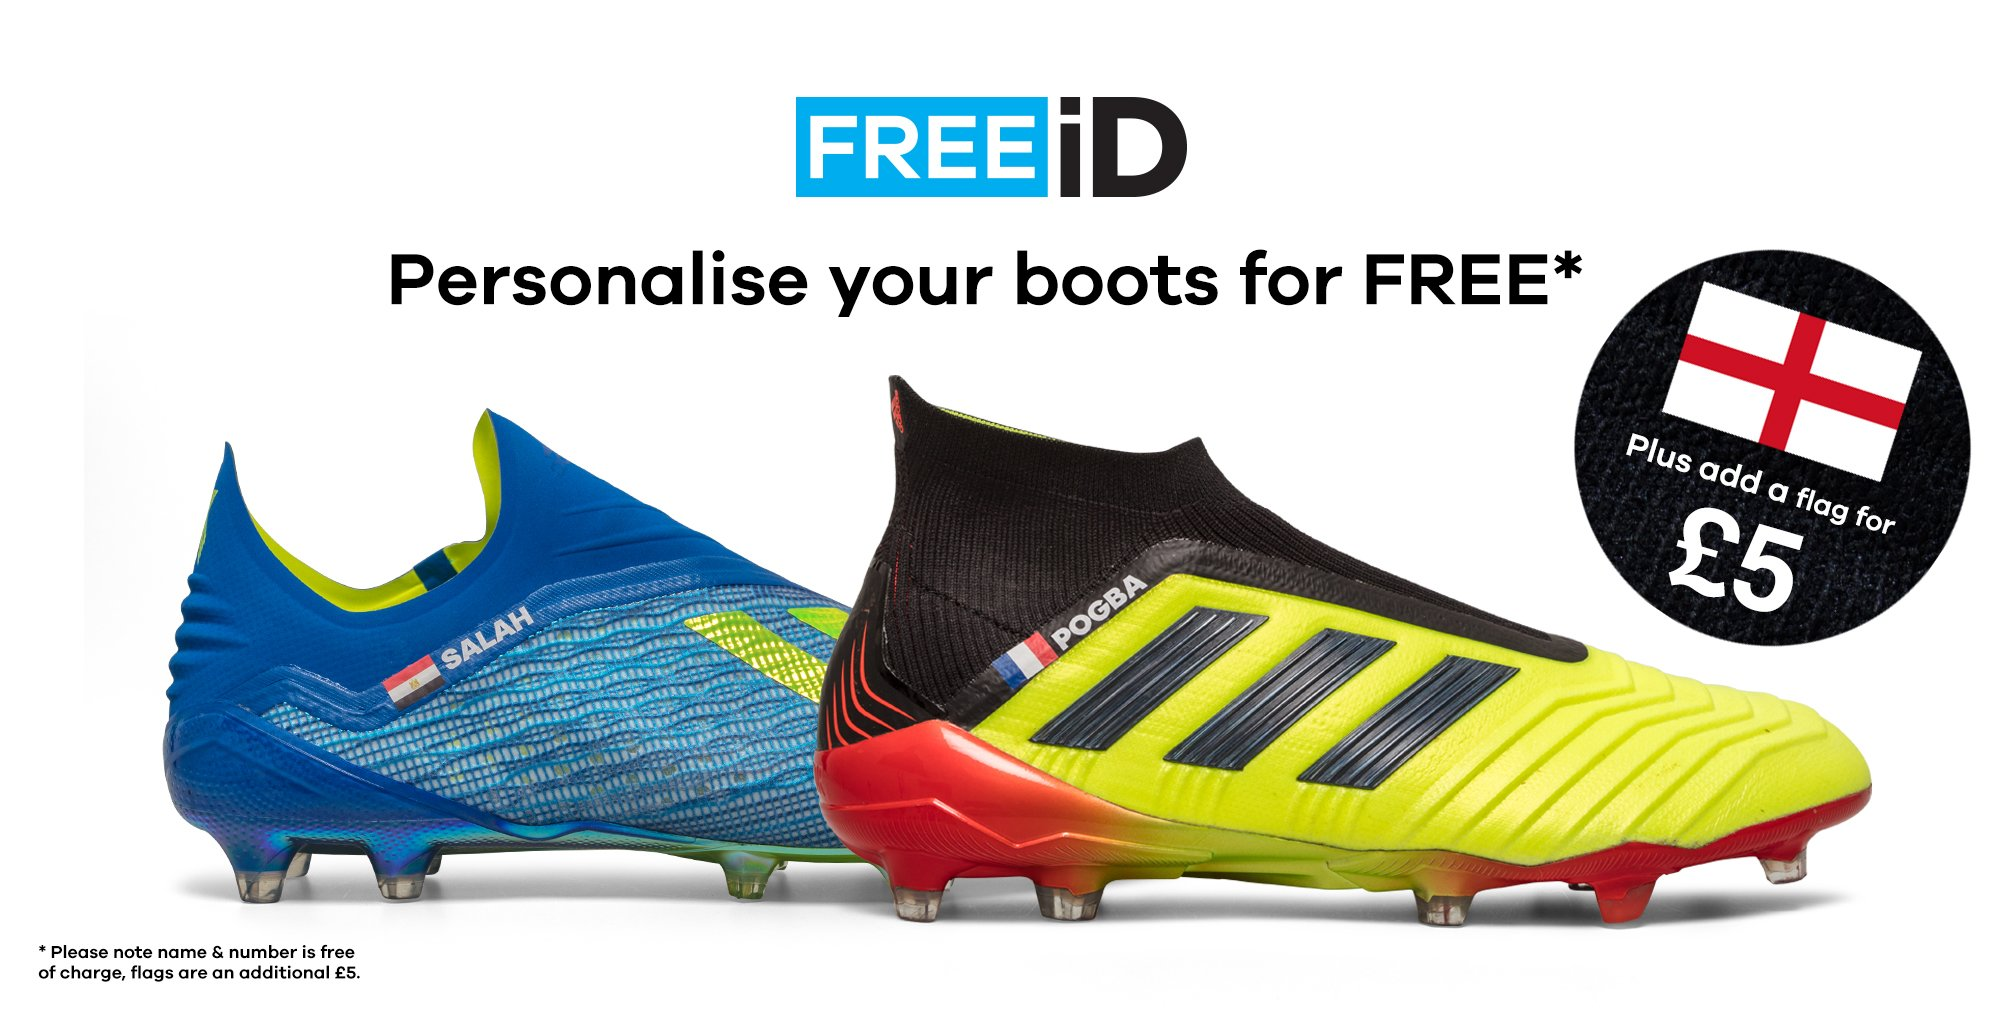 0ab941d54465 FREE iD - FREE Boot Personalisation, Plus add a Flag for £5